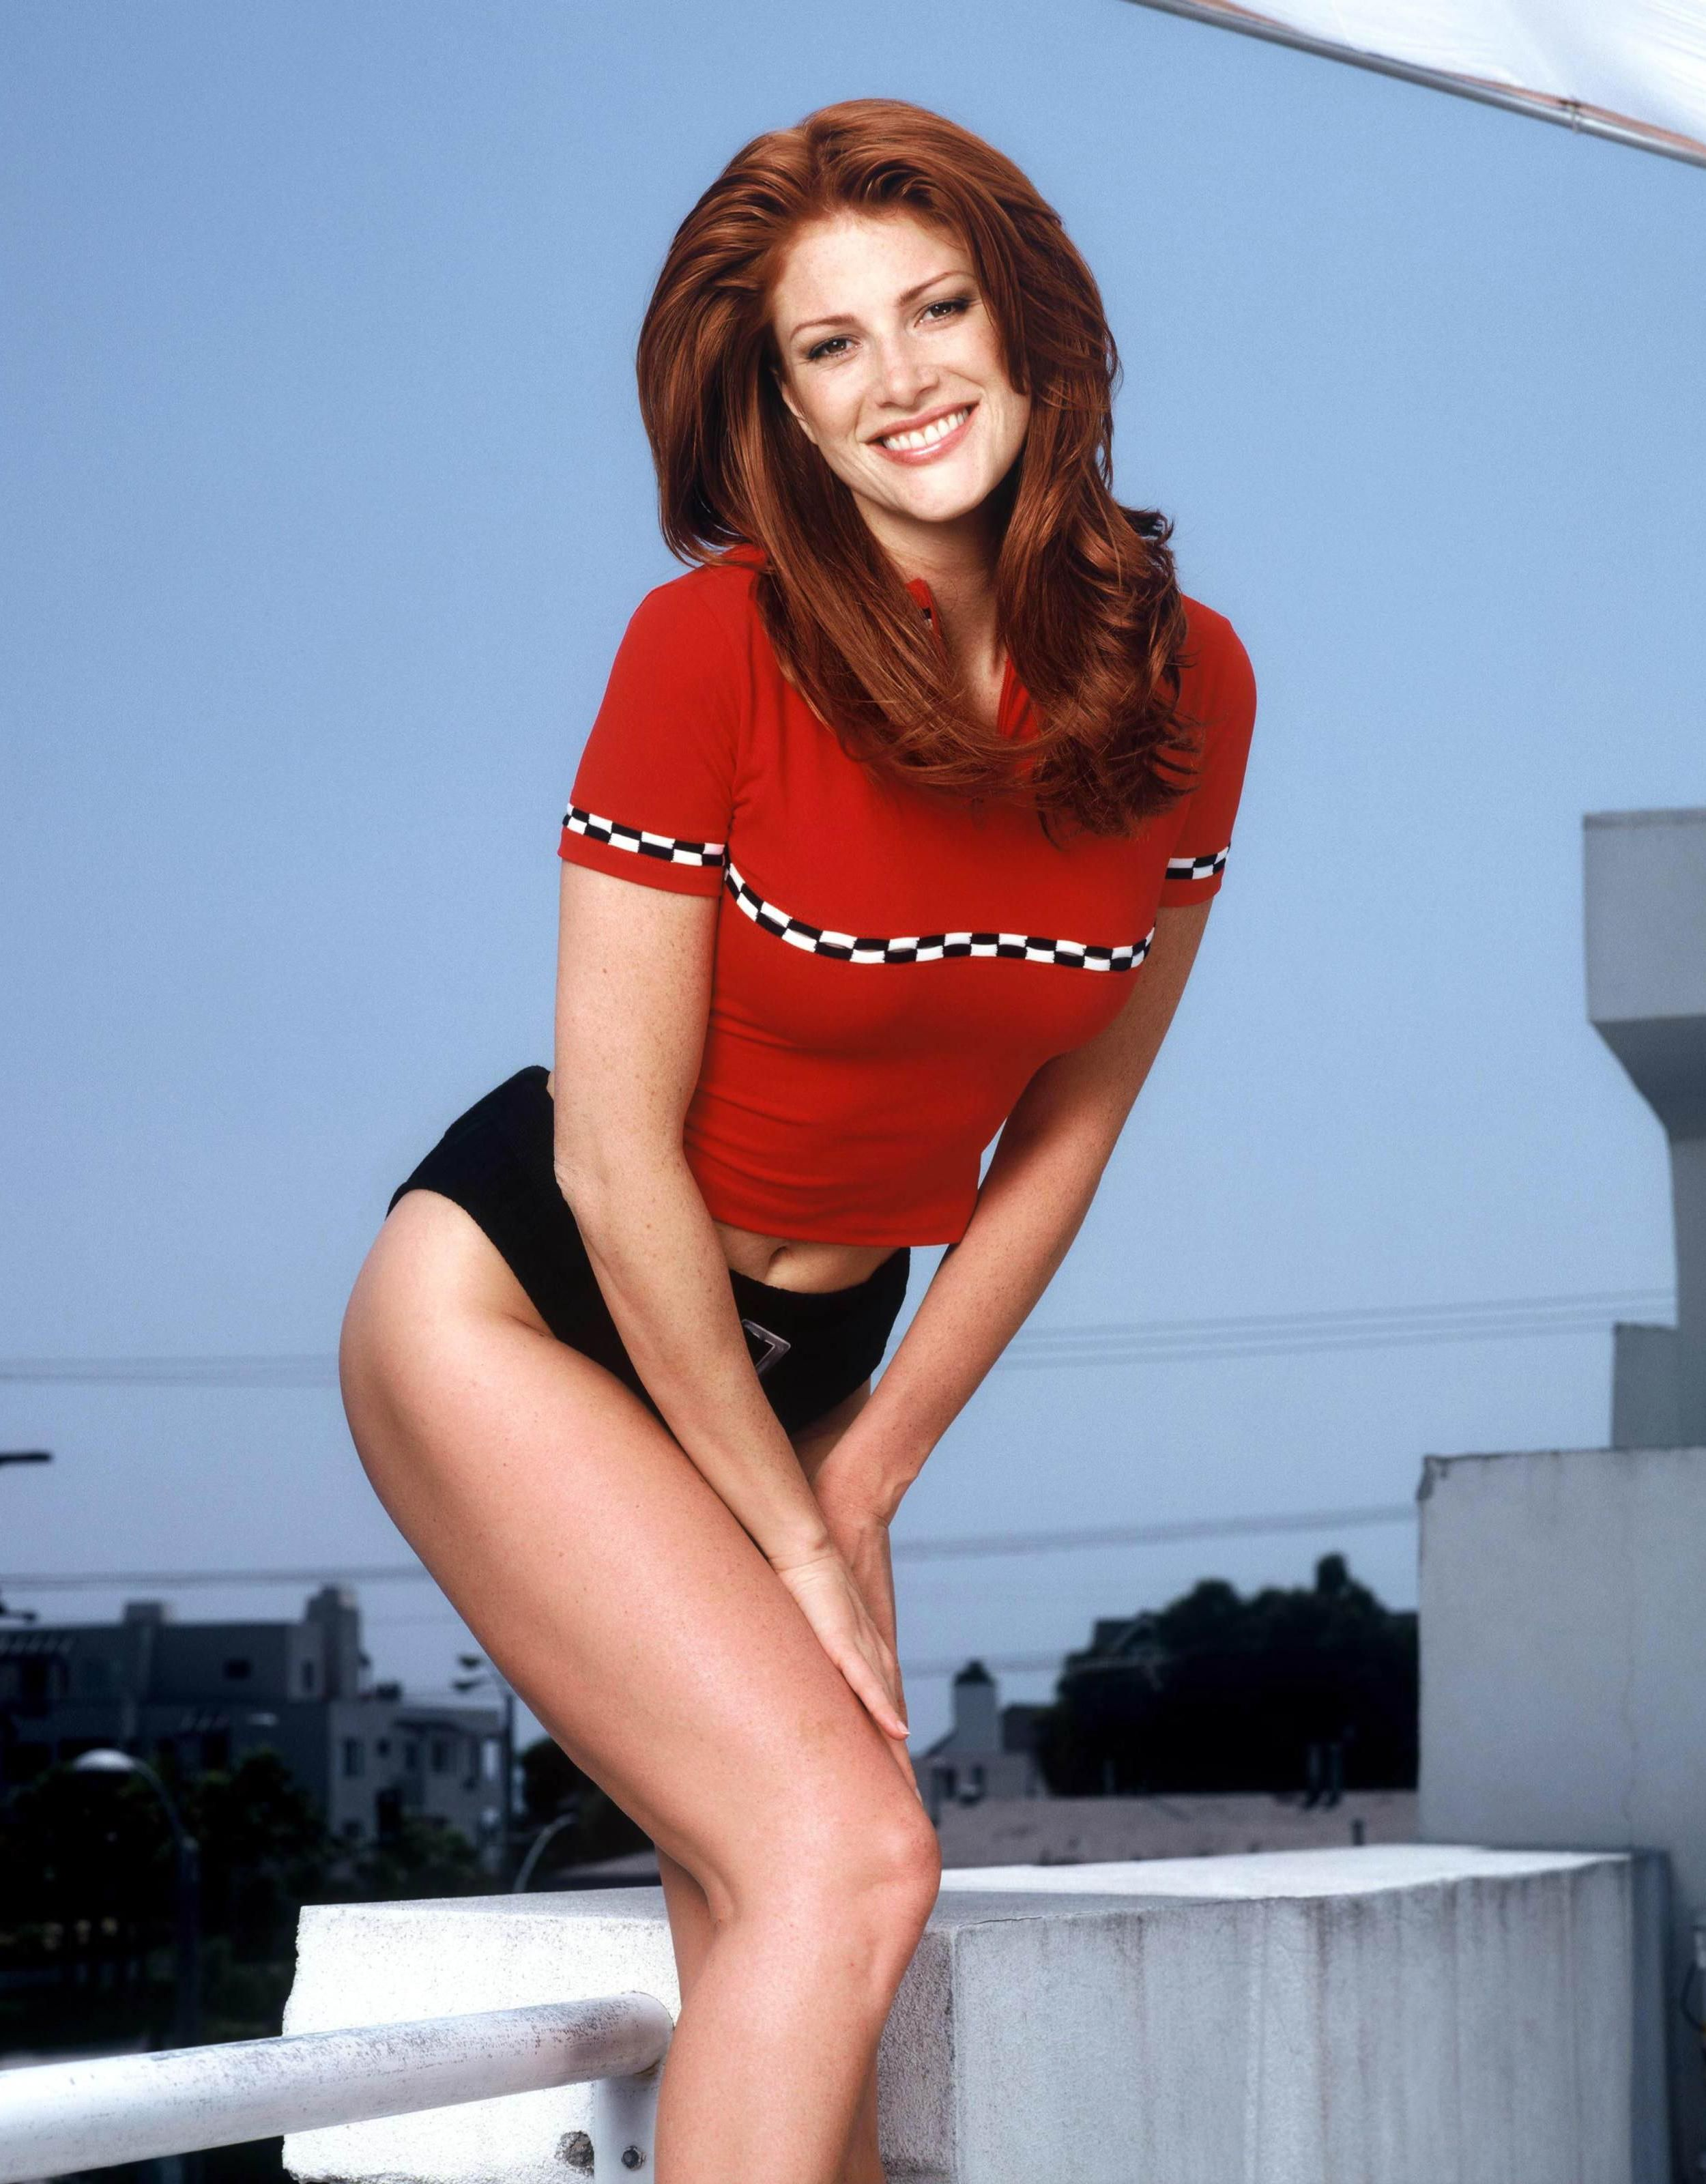 Angie Everhart Angie Everhart new photo